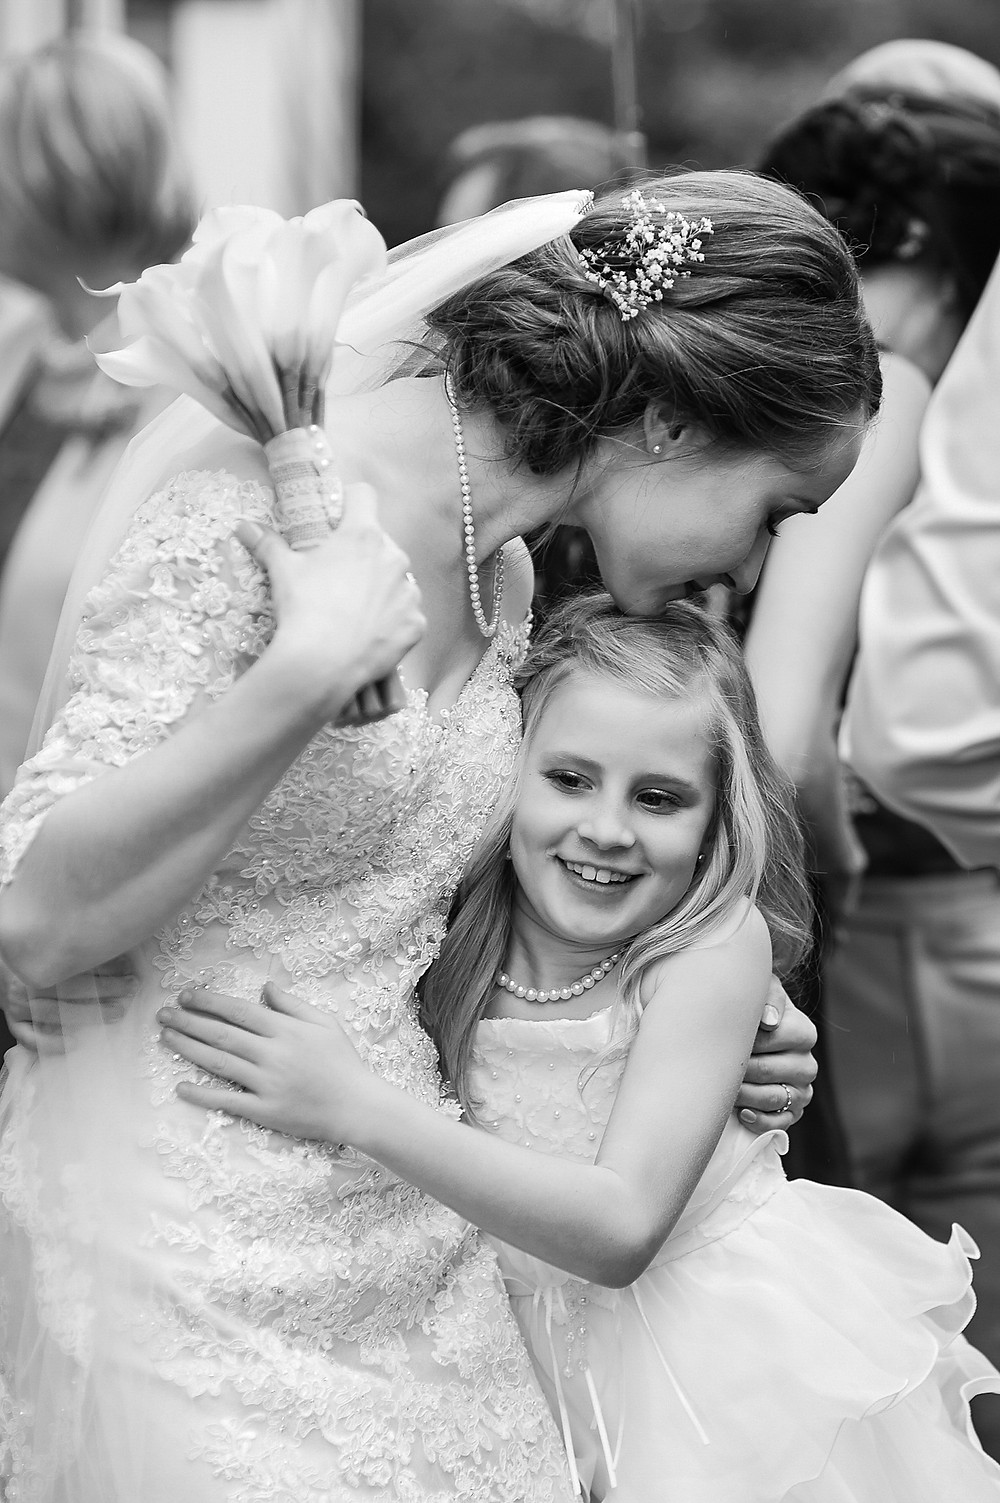 Bride with flower girl, documentary approach